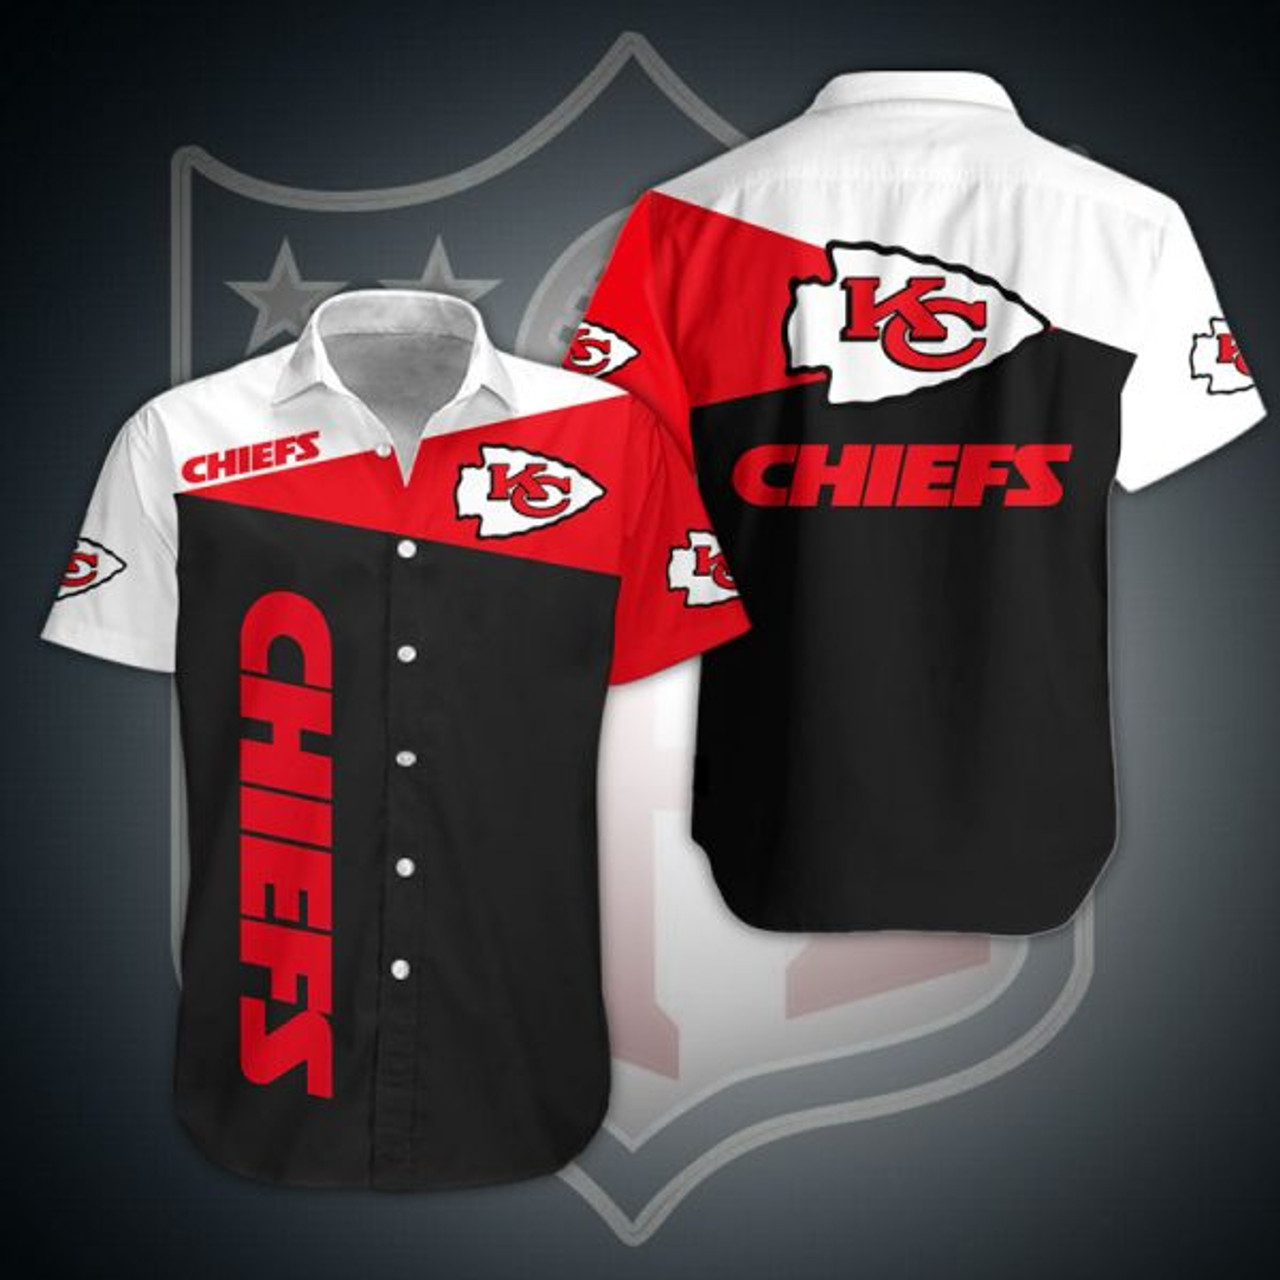 **(OFFICIAL-N.F.L.KANSAS-CITY-CHIEFS-FASHION-BUTTON-FRONT-SPORT-SHIRTS/CUSTOM-3D-GRAPHIC-PRINTED-DETAILED-DOUBLE-SIDED-ALL-OVER/CLASSIC-OFFICIAL-CHIEFS-LOGOS & CHIEFS-OFFICIAL-TEAM-COLORS/PREMIUM-OFFICIAL-N.F.L.CHIEFS-TEAM-BUTTON-UP-SPORT-SHIRTS)**